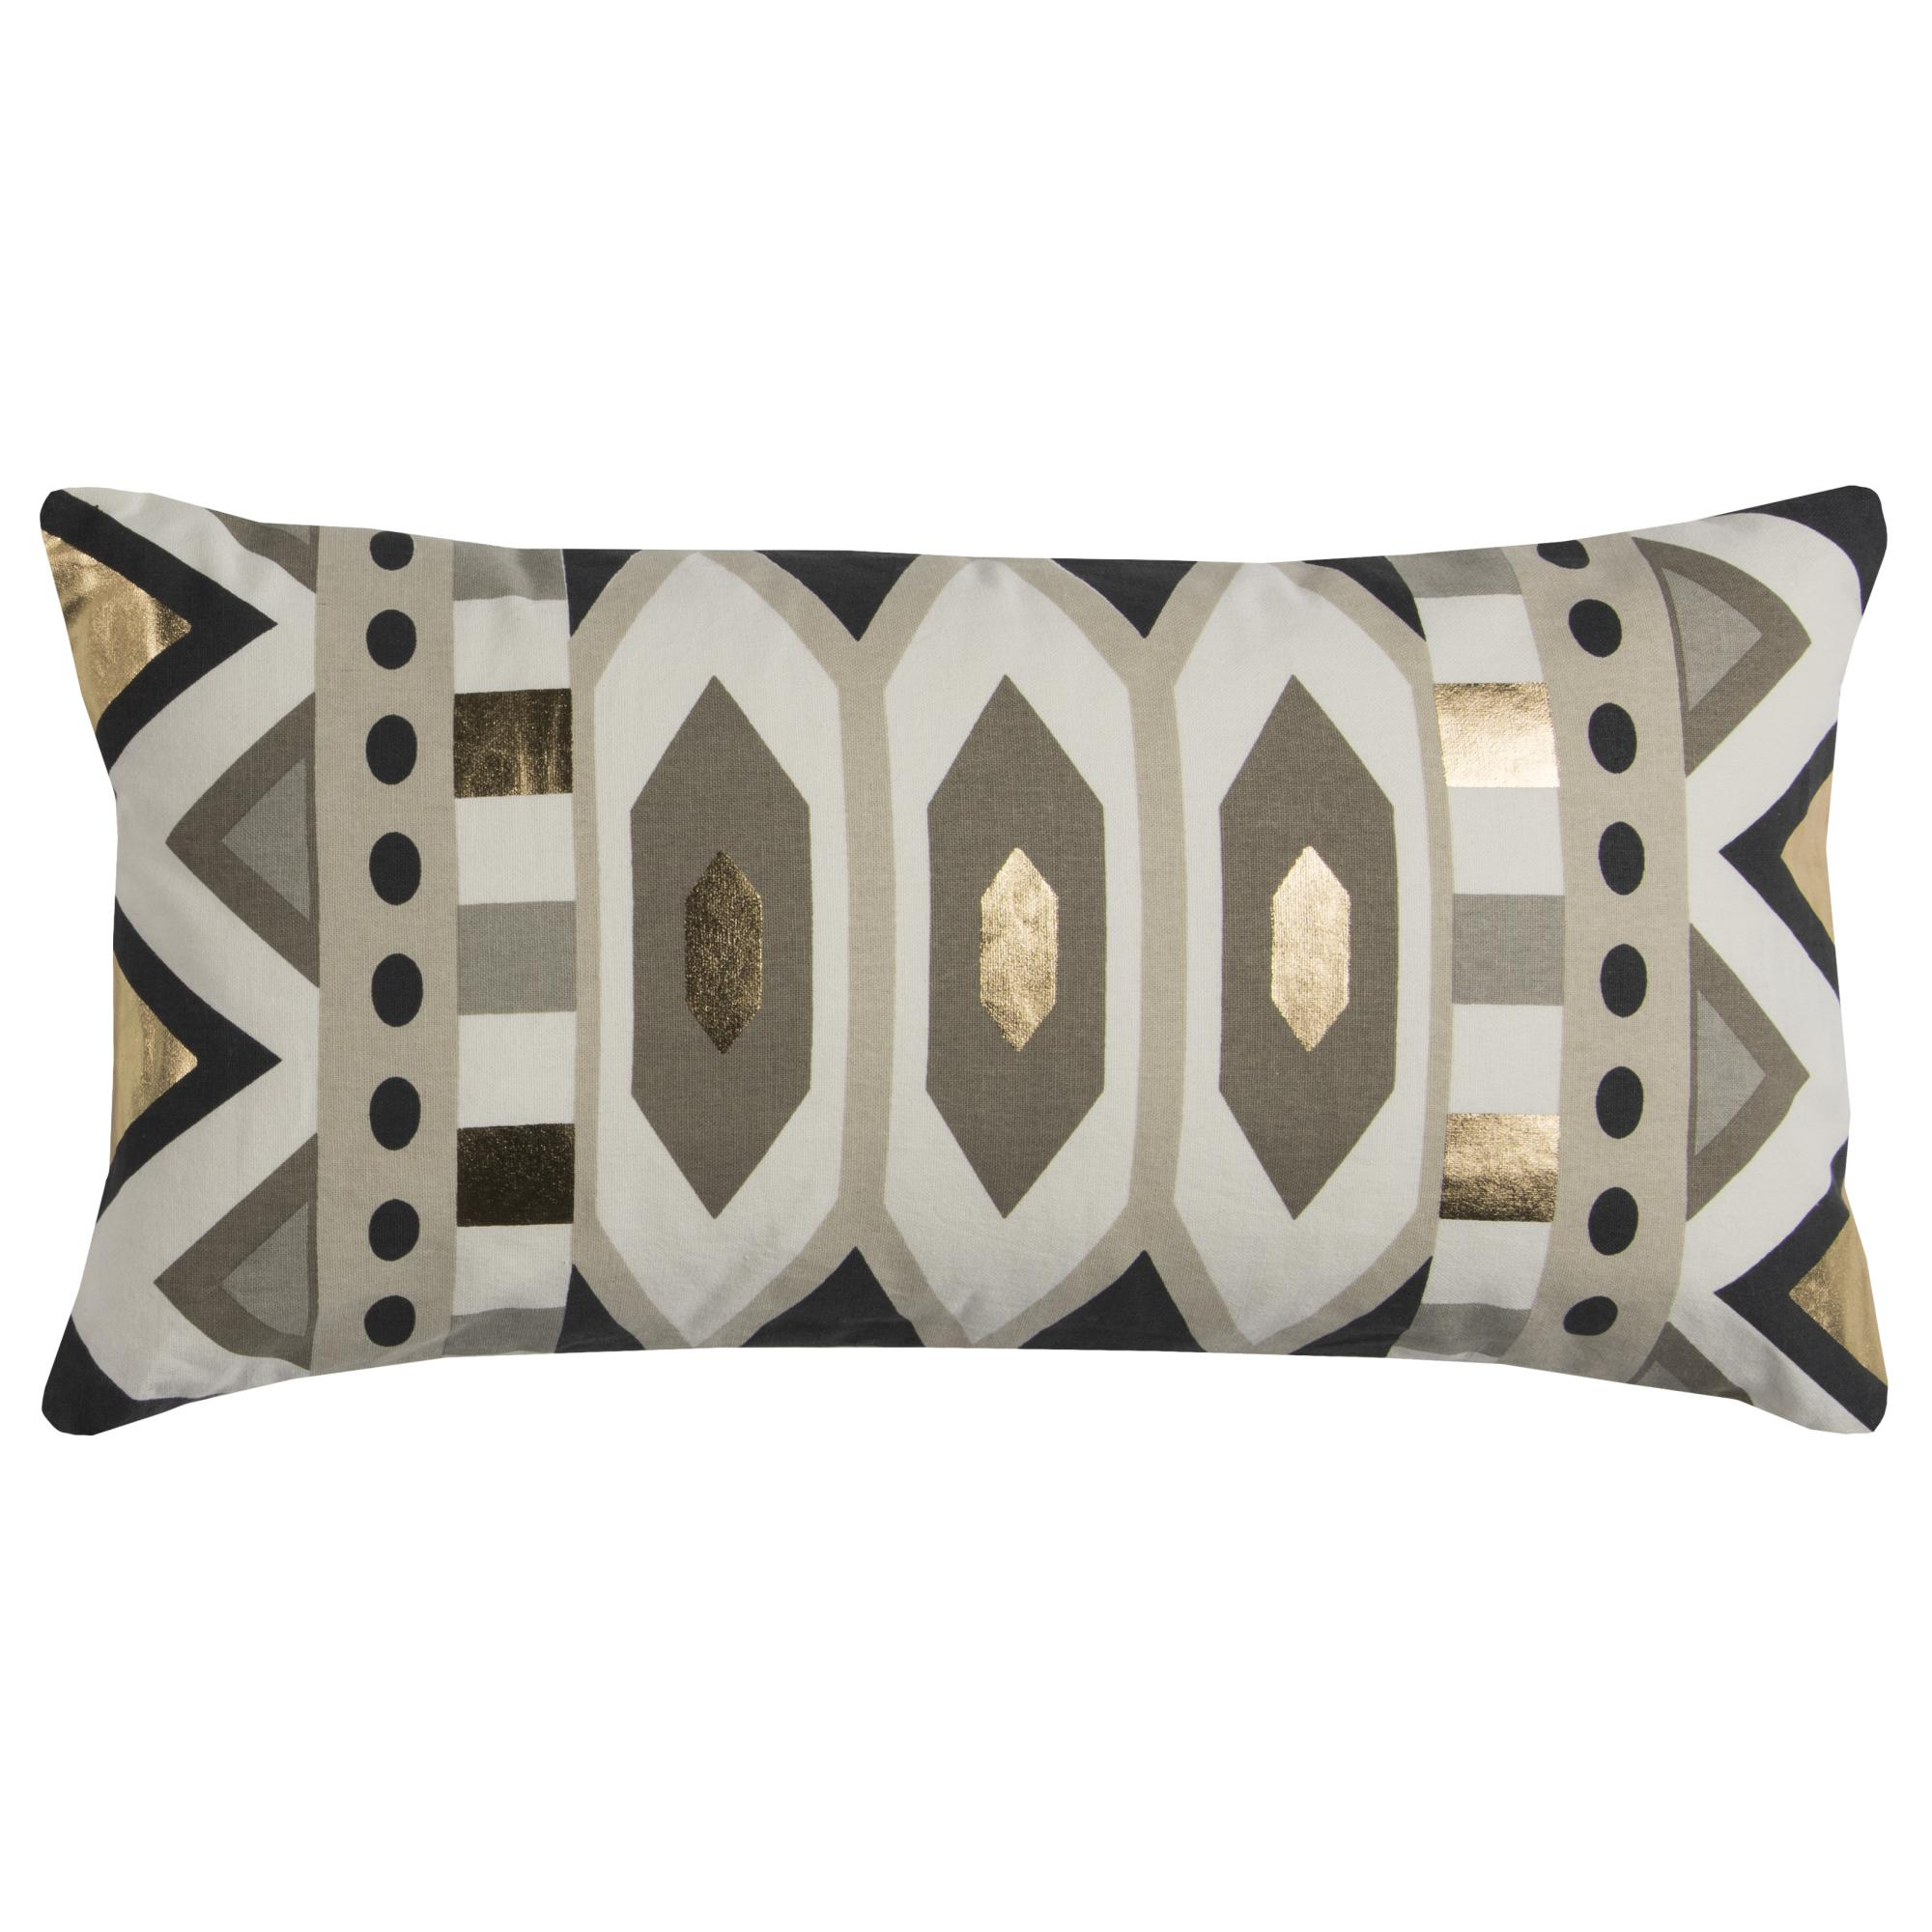 "Rachel Kate By Rizzy Home Decorative Poly Filled Throw Pillow Geometric 11""X21"" Gray"